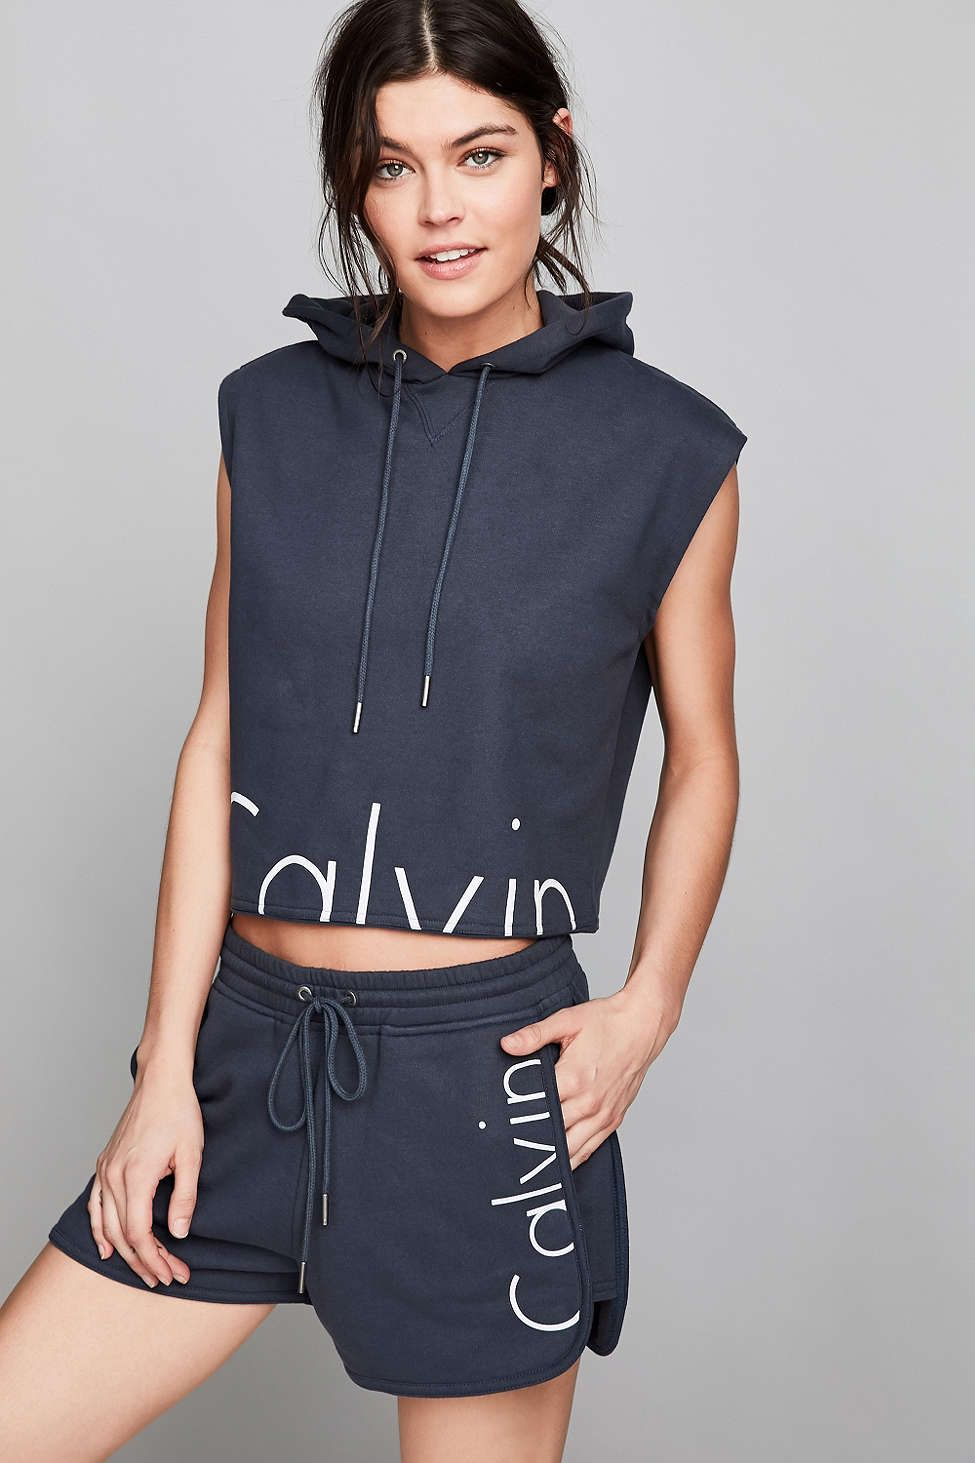 9a33d5fadb1 Calvin Klein For UO Capsule Drawstring Sweat Short - Urban Outfitters